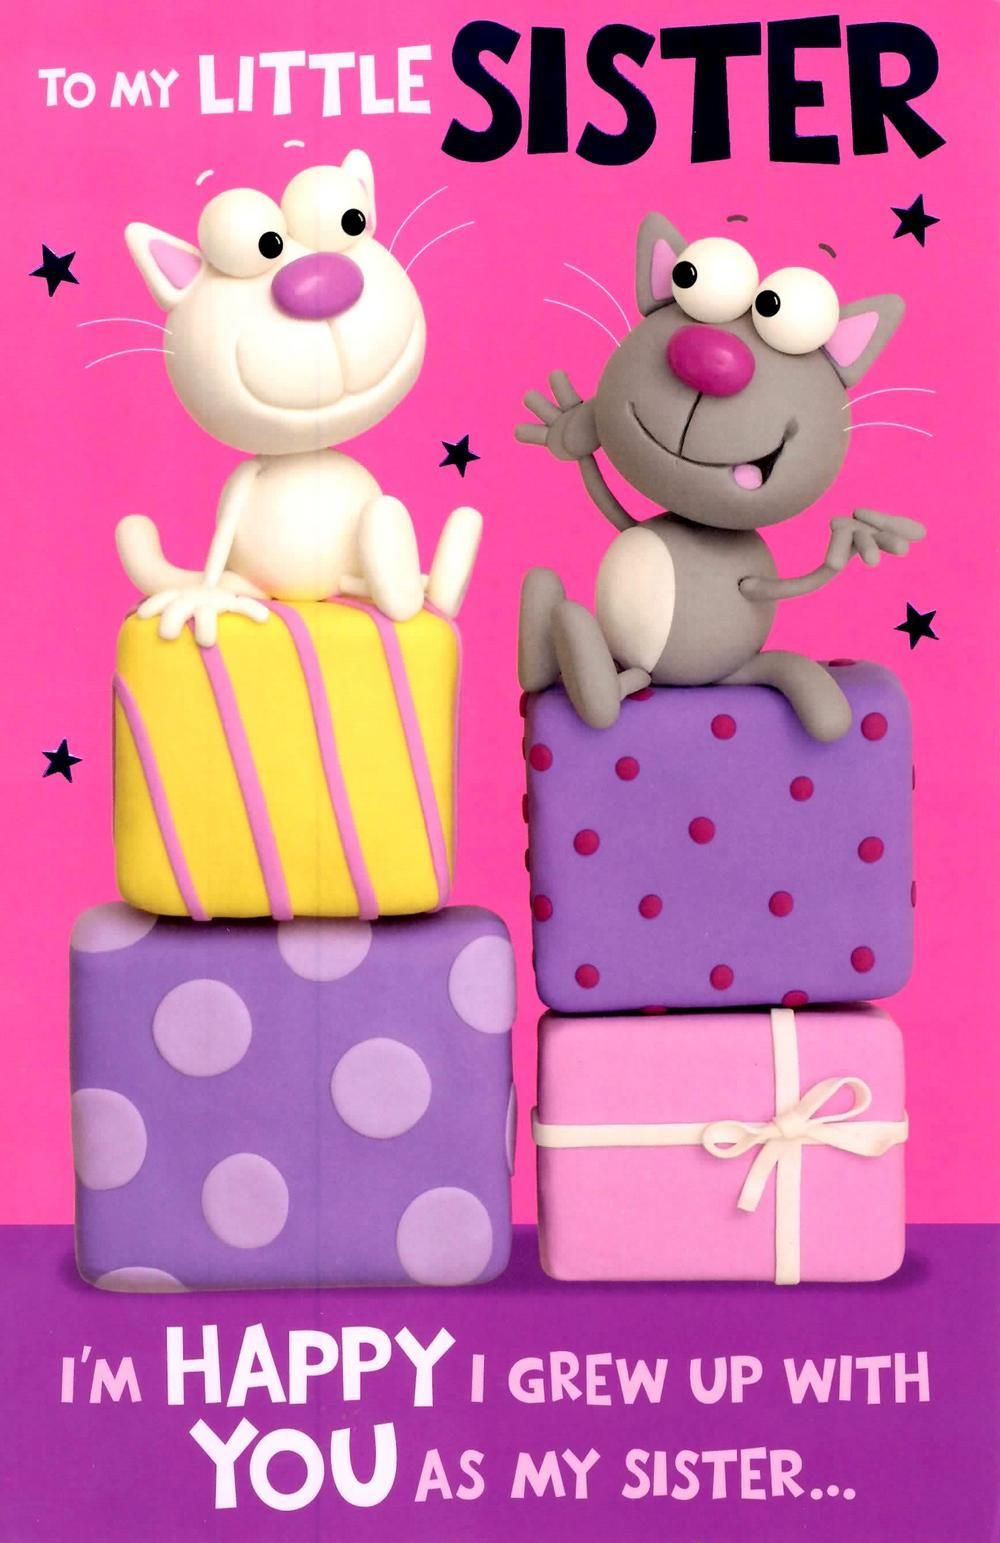 Happy birthday wishes for sister images and pictures Share – Cute Birthday Card for Sister